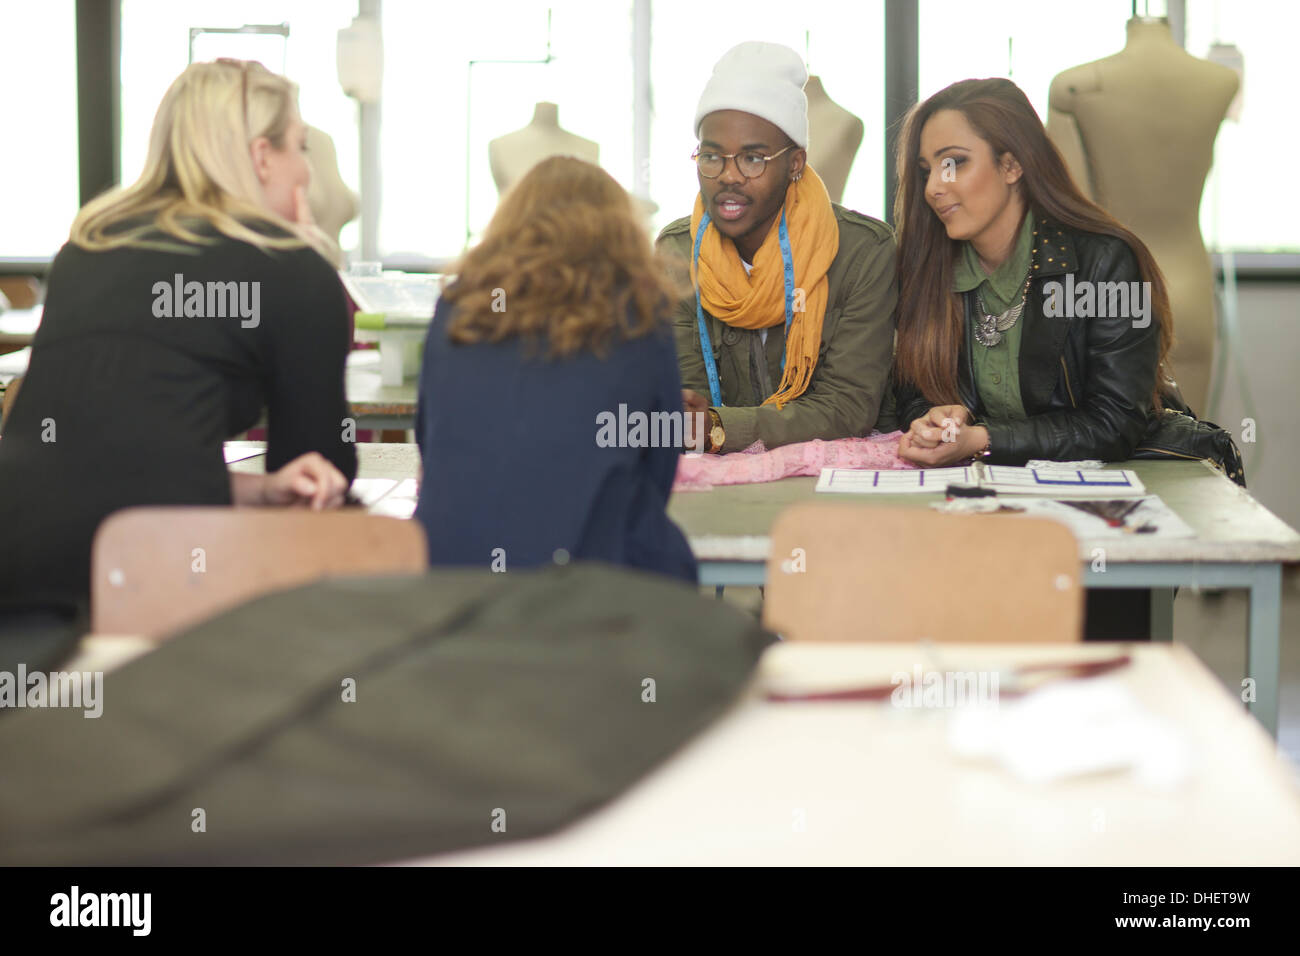 Fashion design students in class - Stock Image